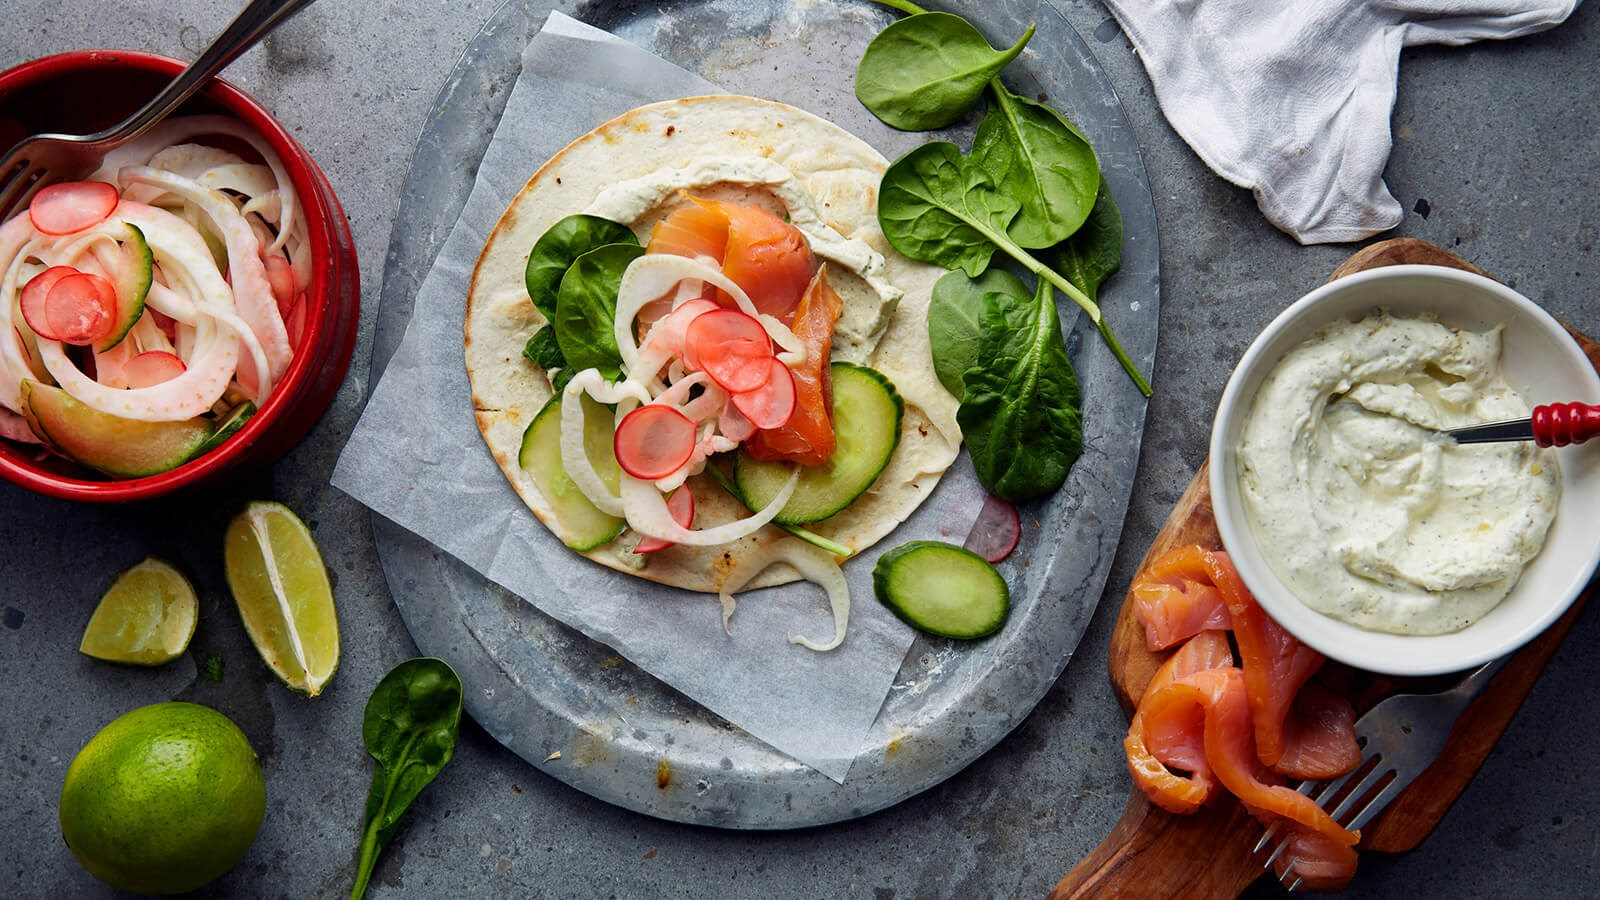 Taco with smoked salmon with pickled veggies